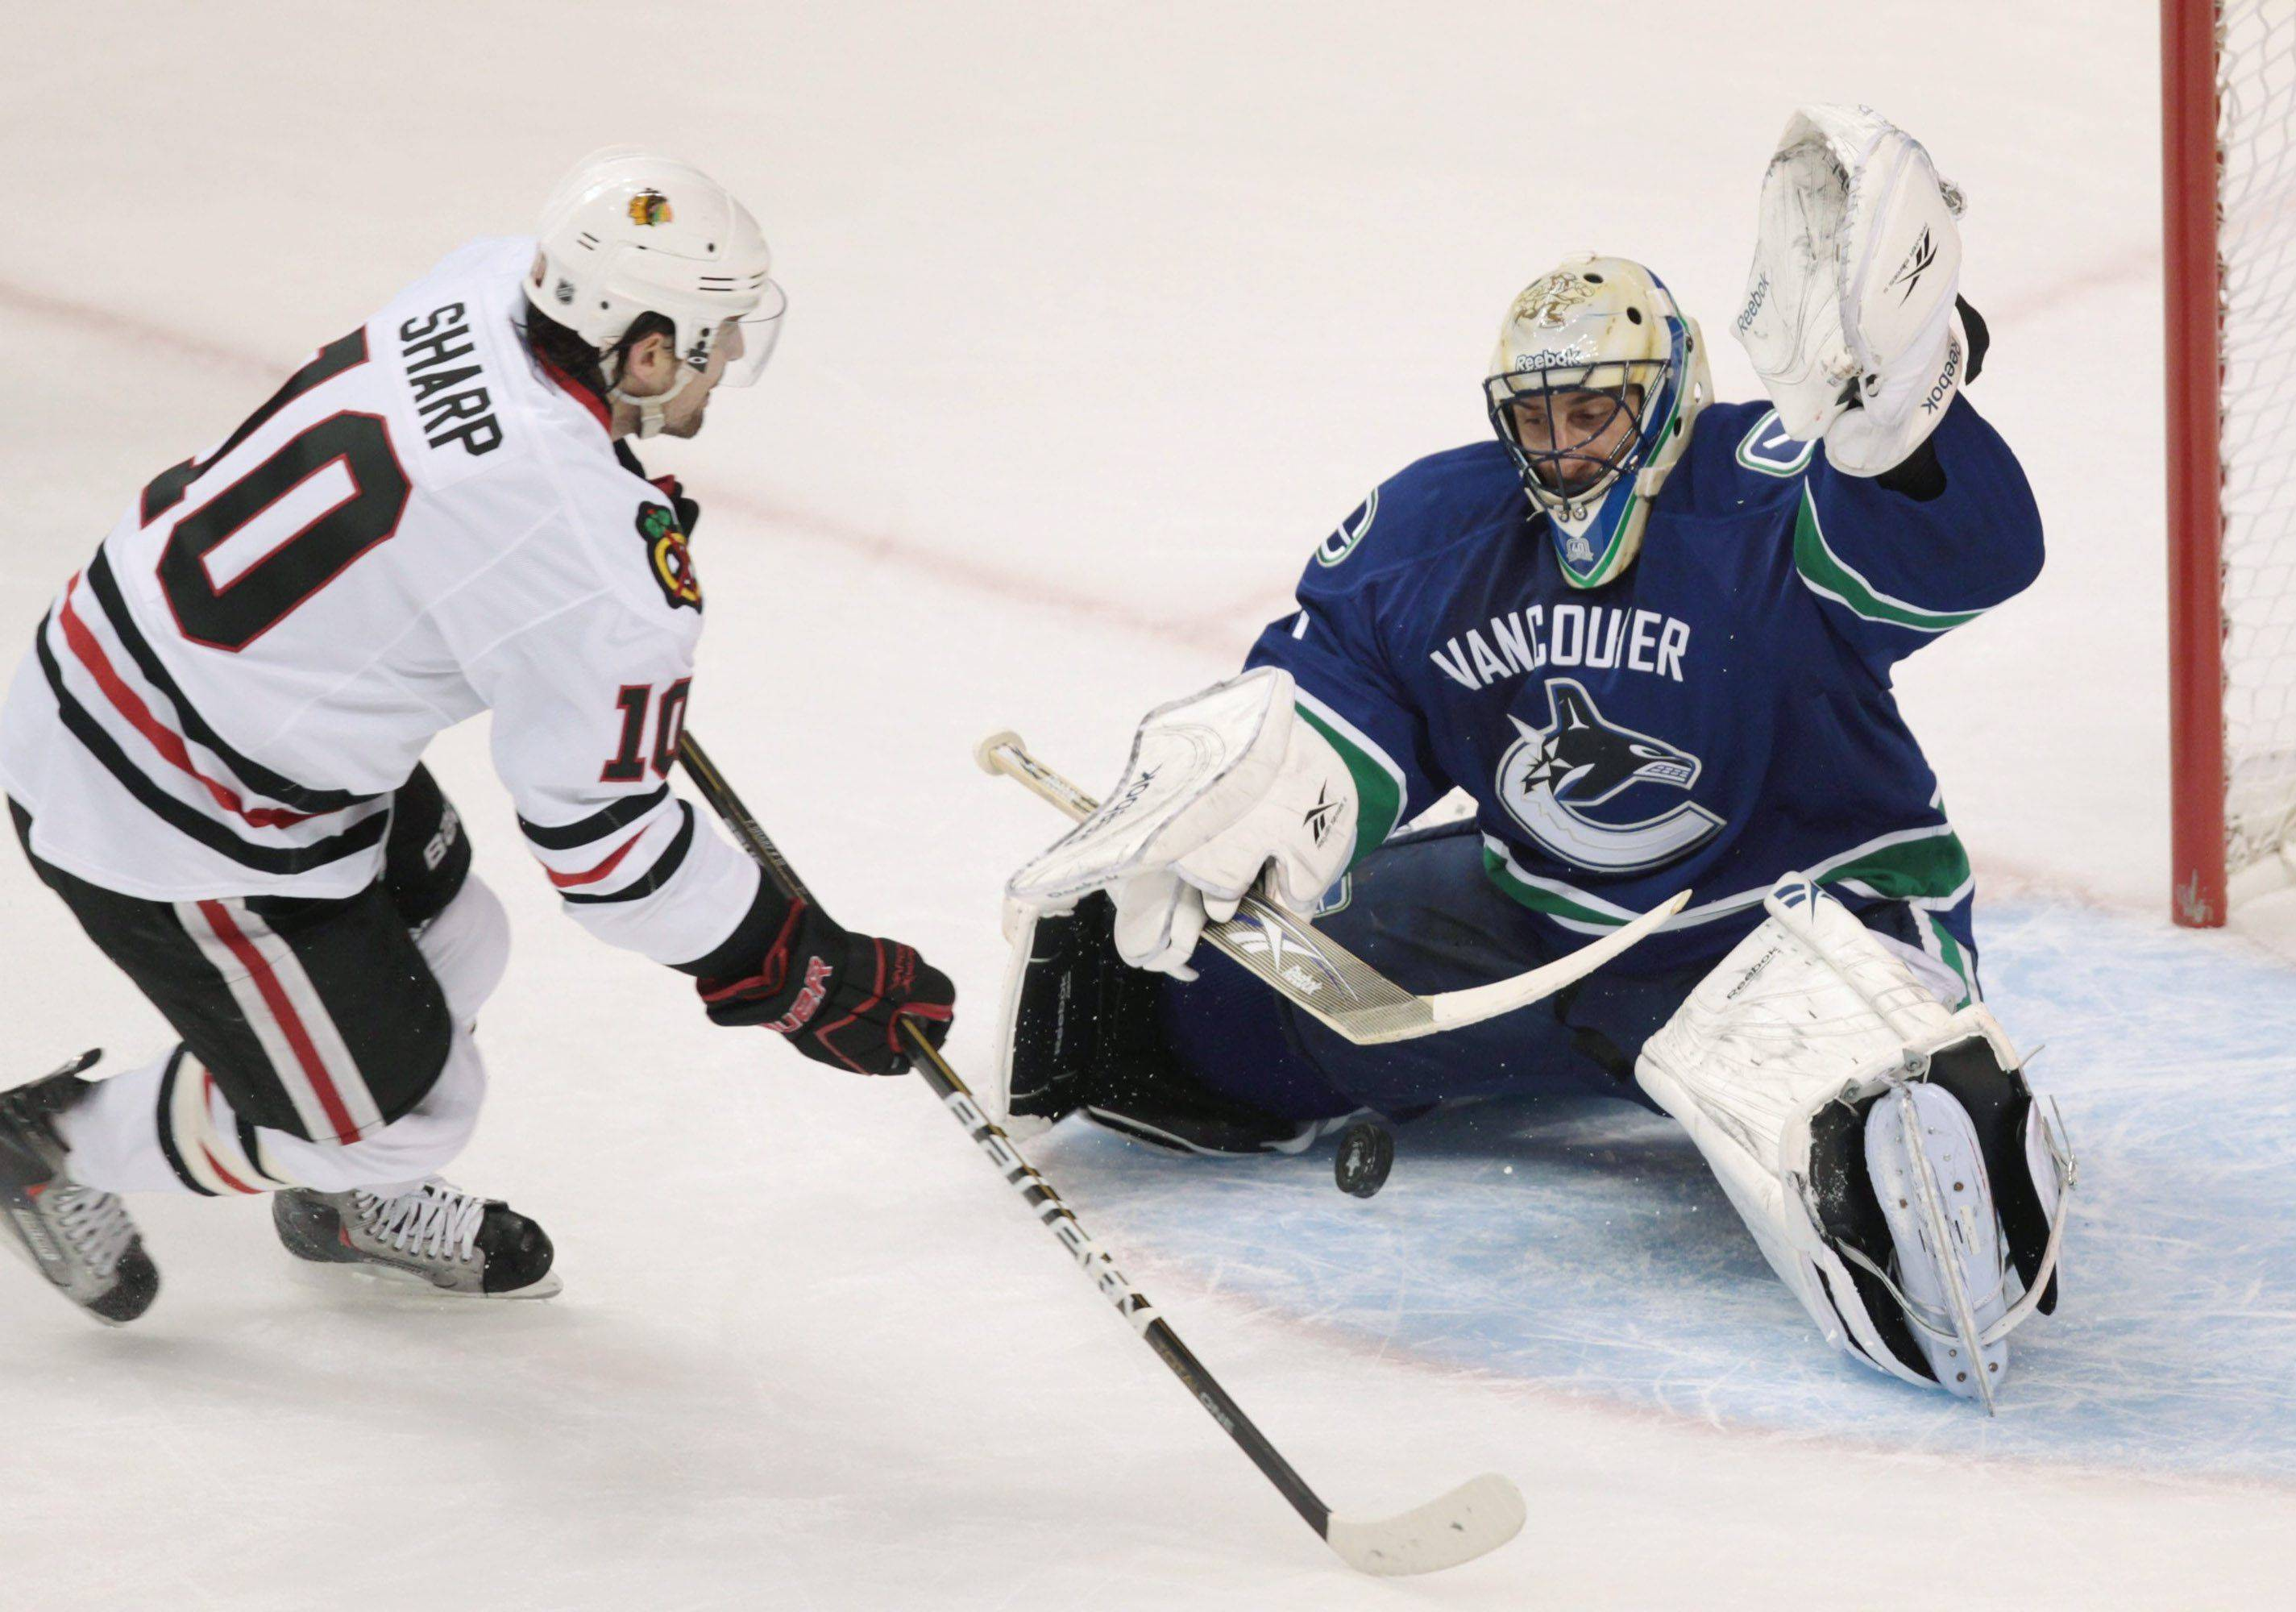 Chicago Blackhawks' Patrick Sharp, left, has his shot stopped by Vancouver Canucks' Roberto Luongo during the first period.